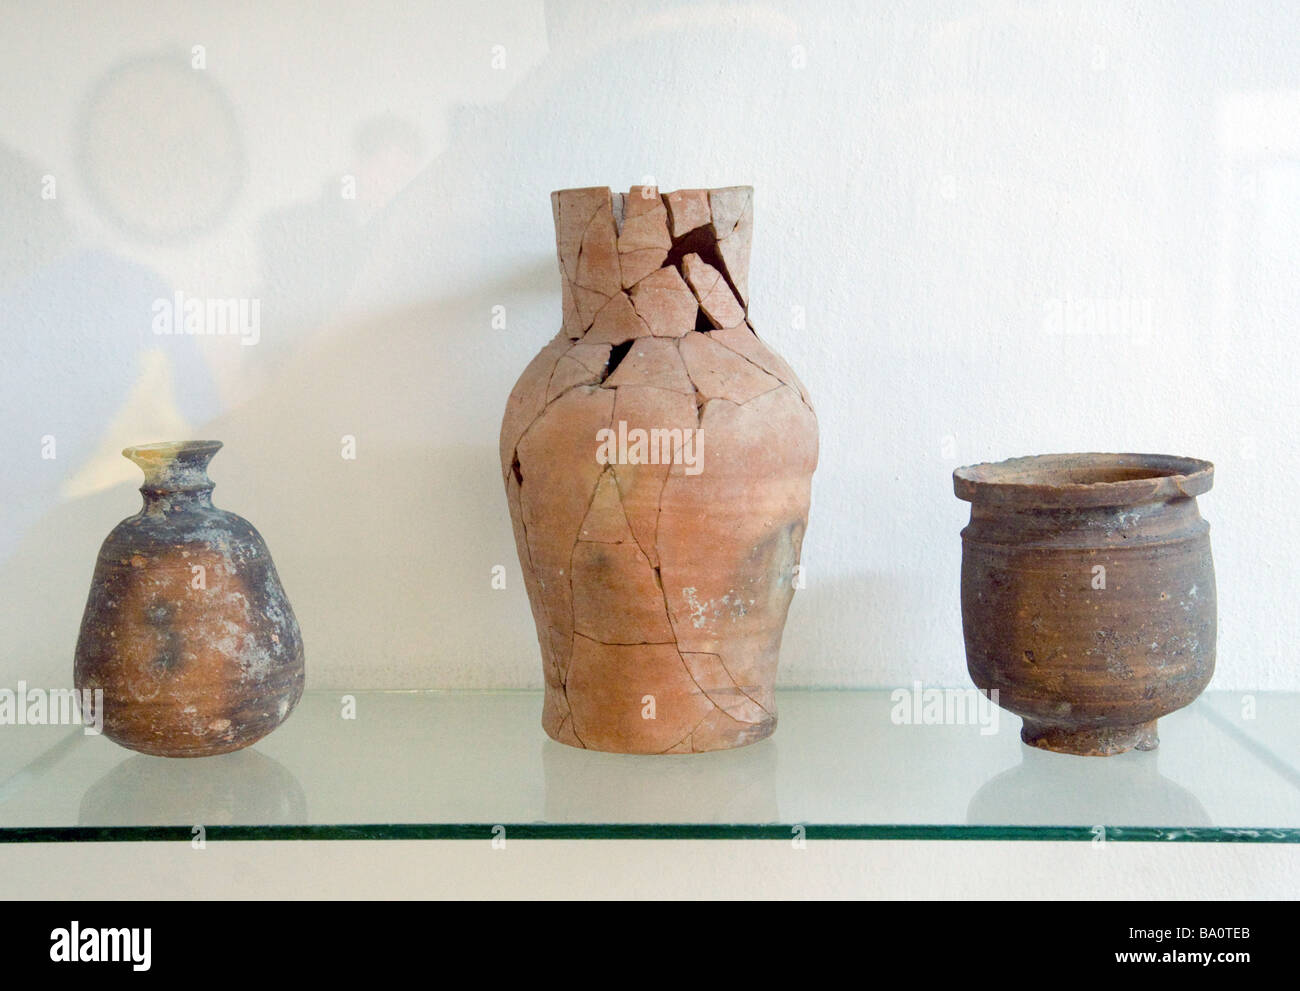 Byzantine age pottery vases, in the Museum of Archaeology, Jerash, Jordan - Stock Image